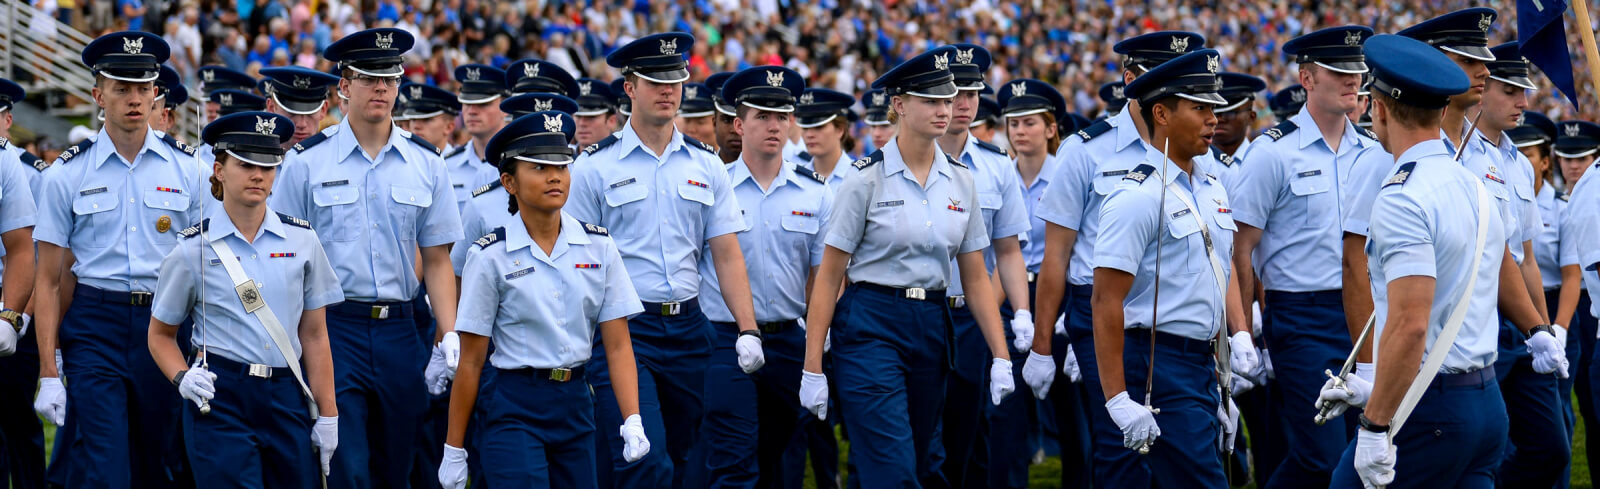 Traditions United States Air Force Academy